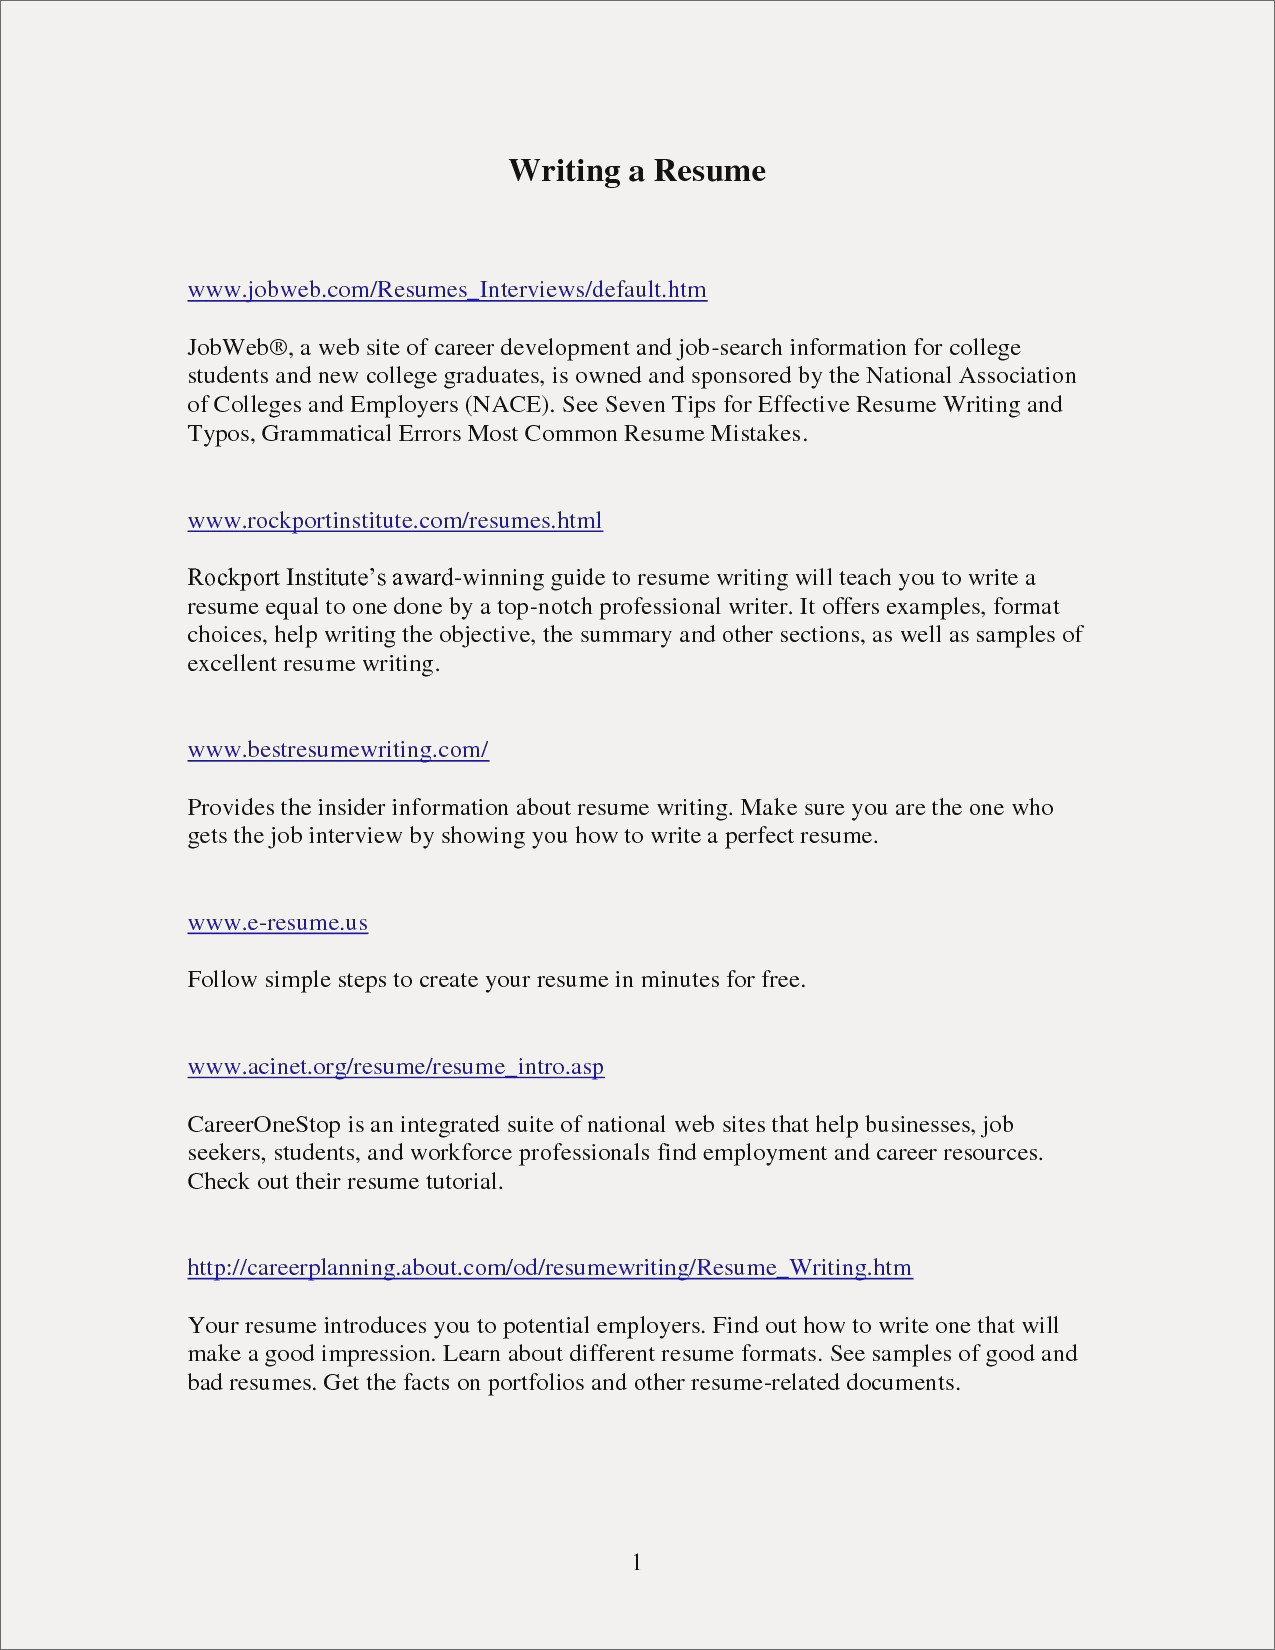 technical support resume template example-Entry Level Technical Support Resume – Sample Entry Level Resume New Entry Level Resume sorority Resume 7-r